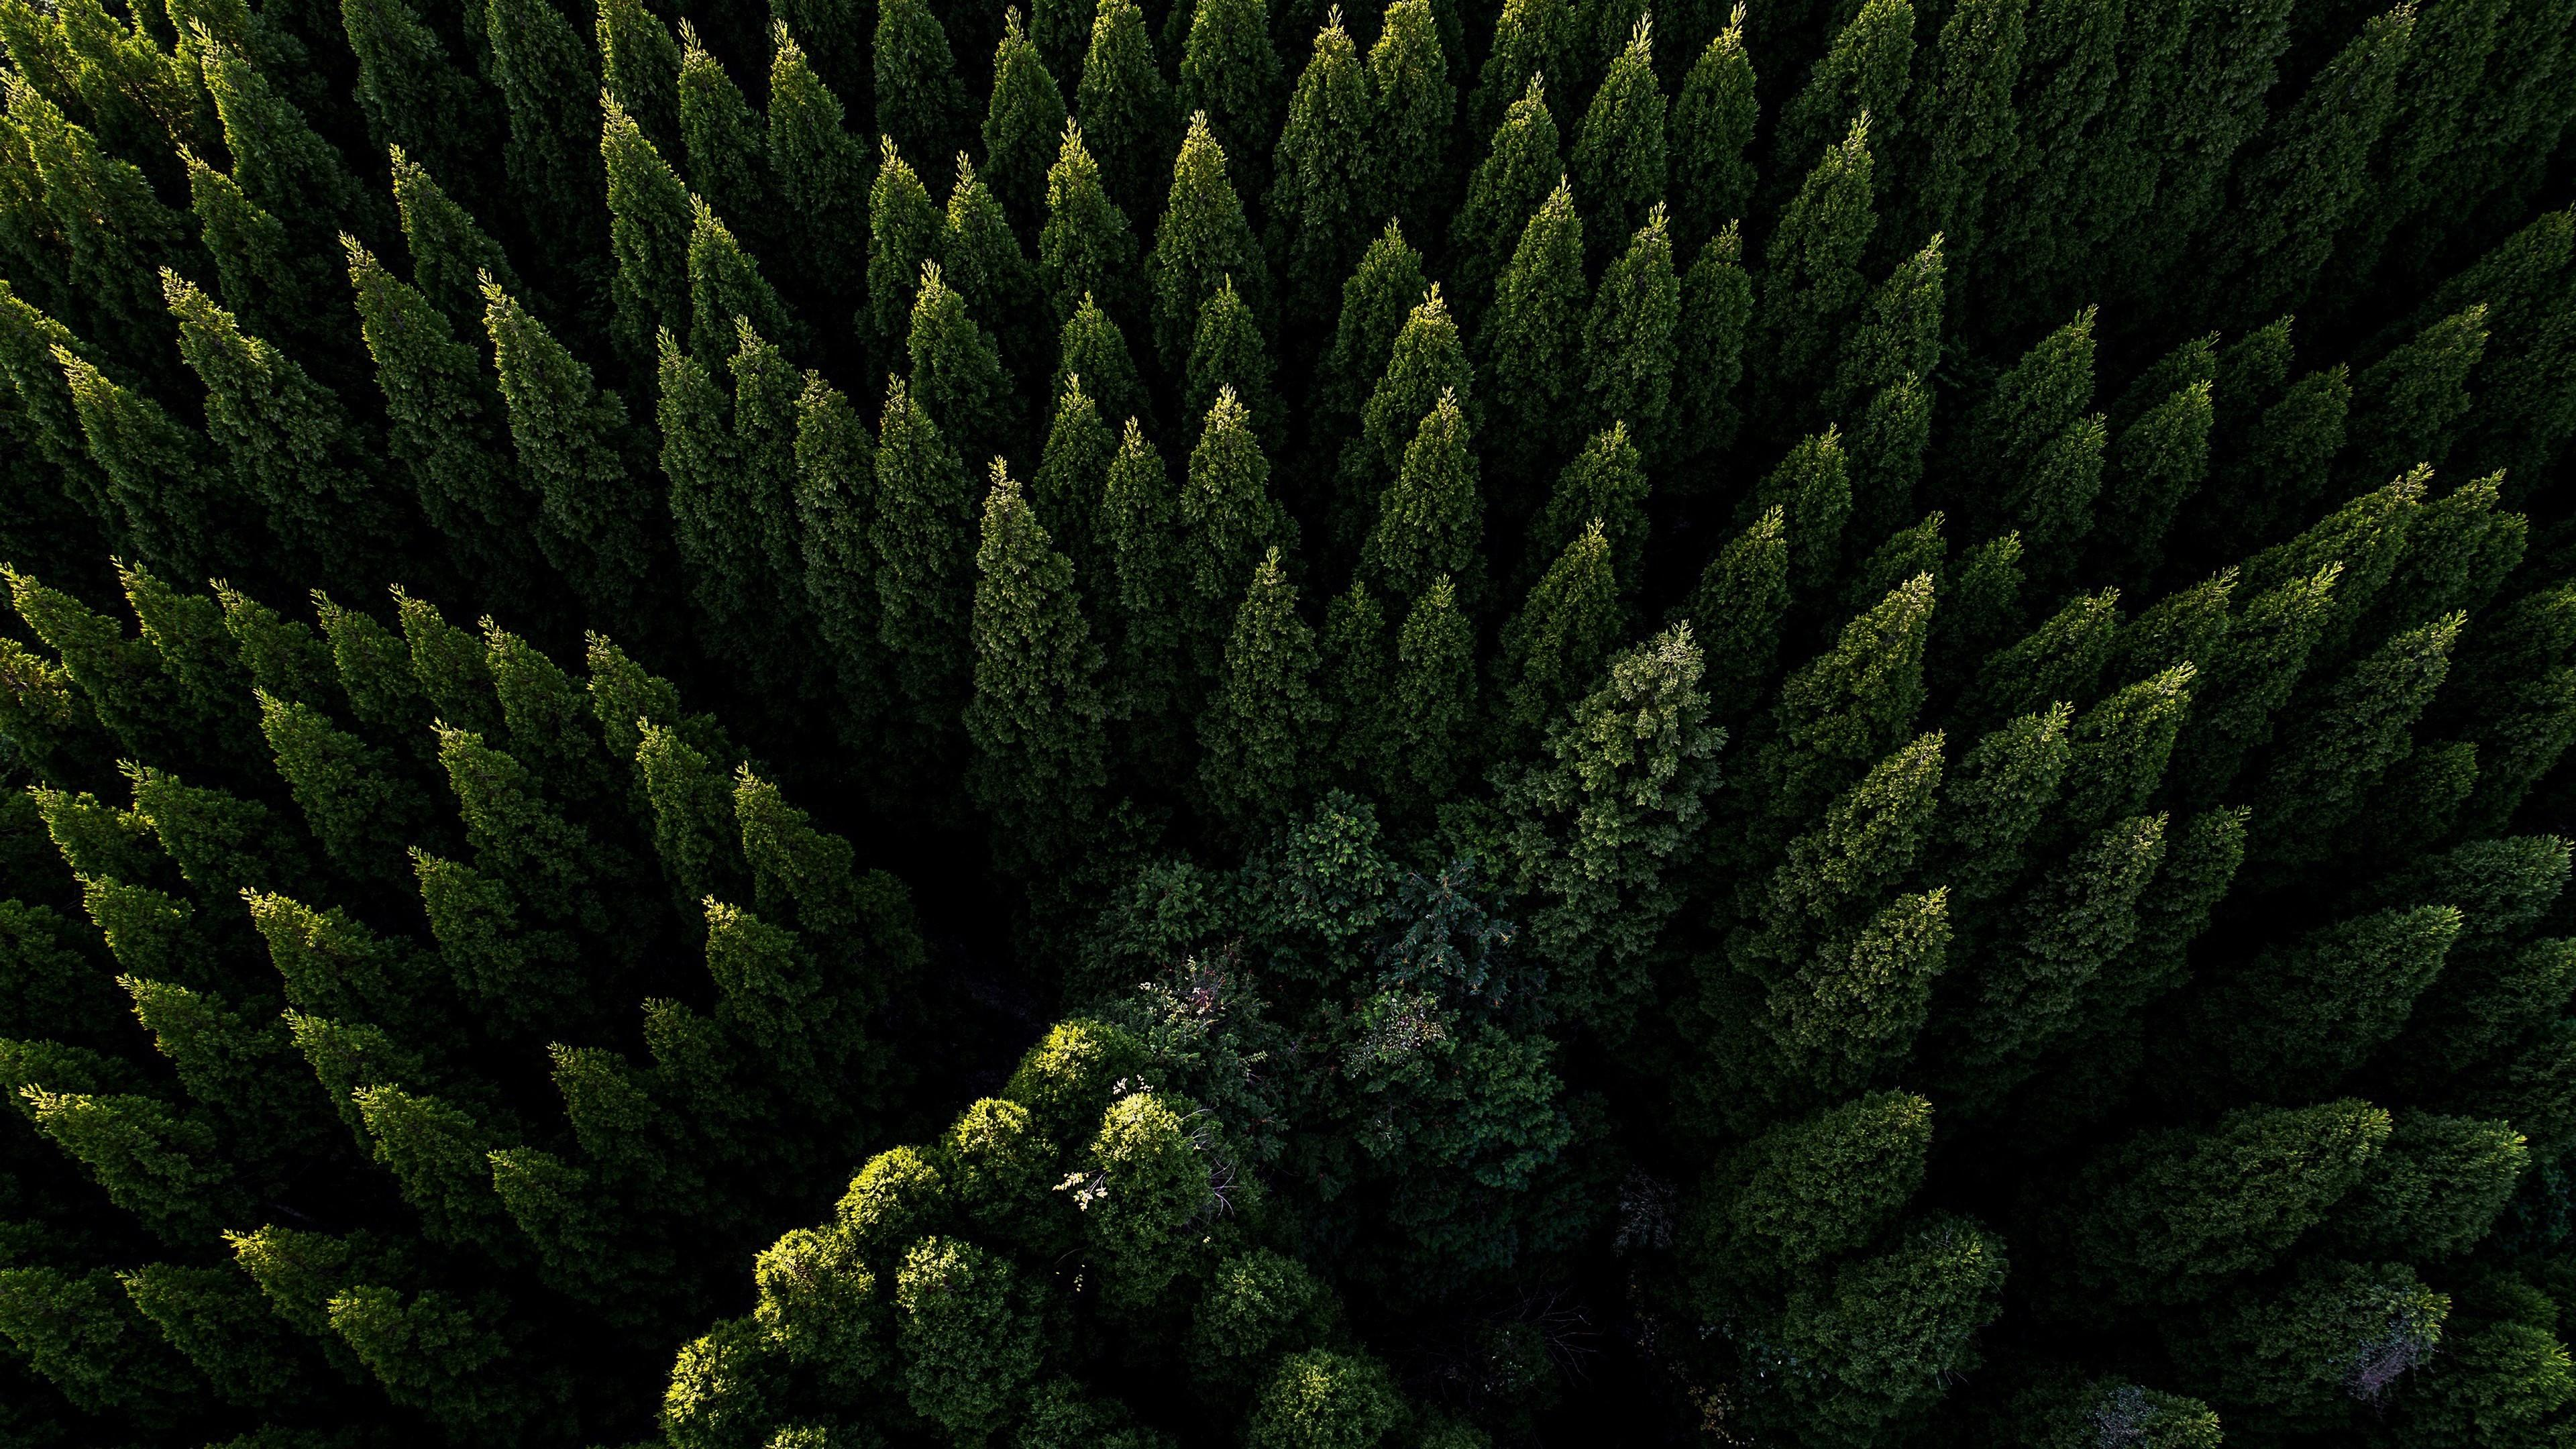 Forest Aerial View 4k Wallpapers - Wallpaper Cave